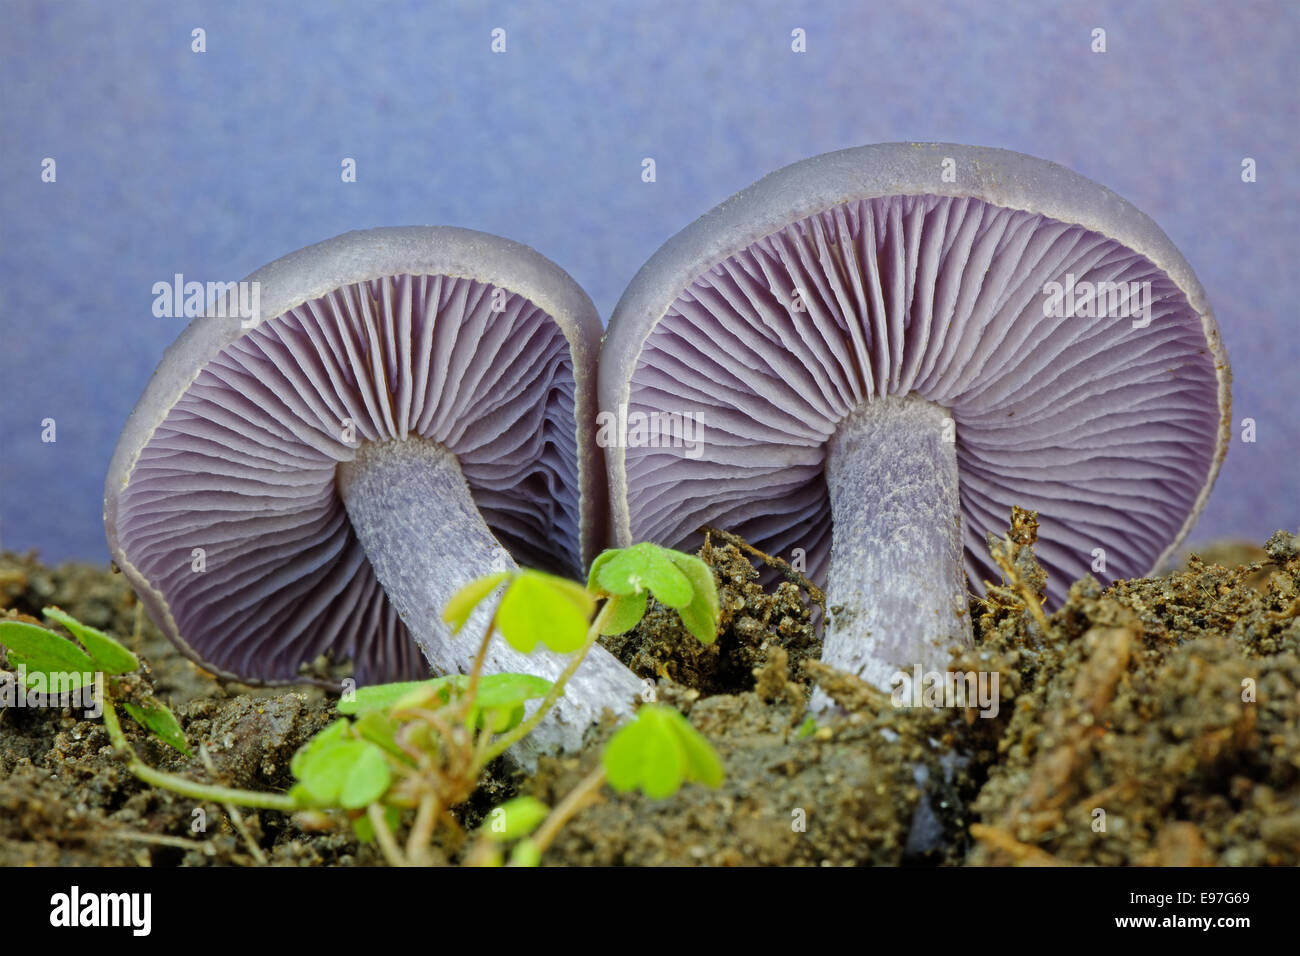 Edible Mould Stock Photos & Edible Mould Stock Images - Alamy